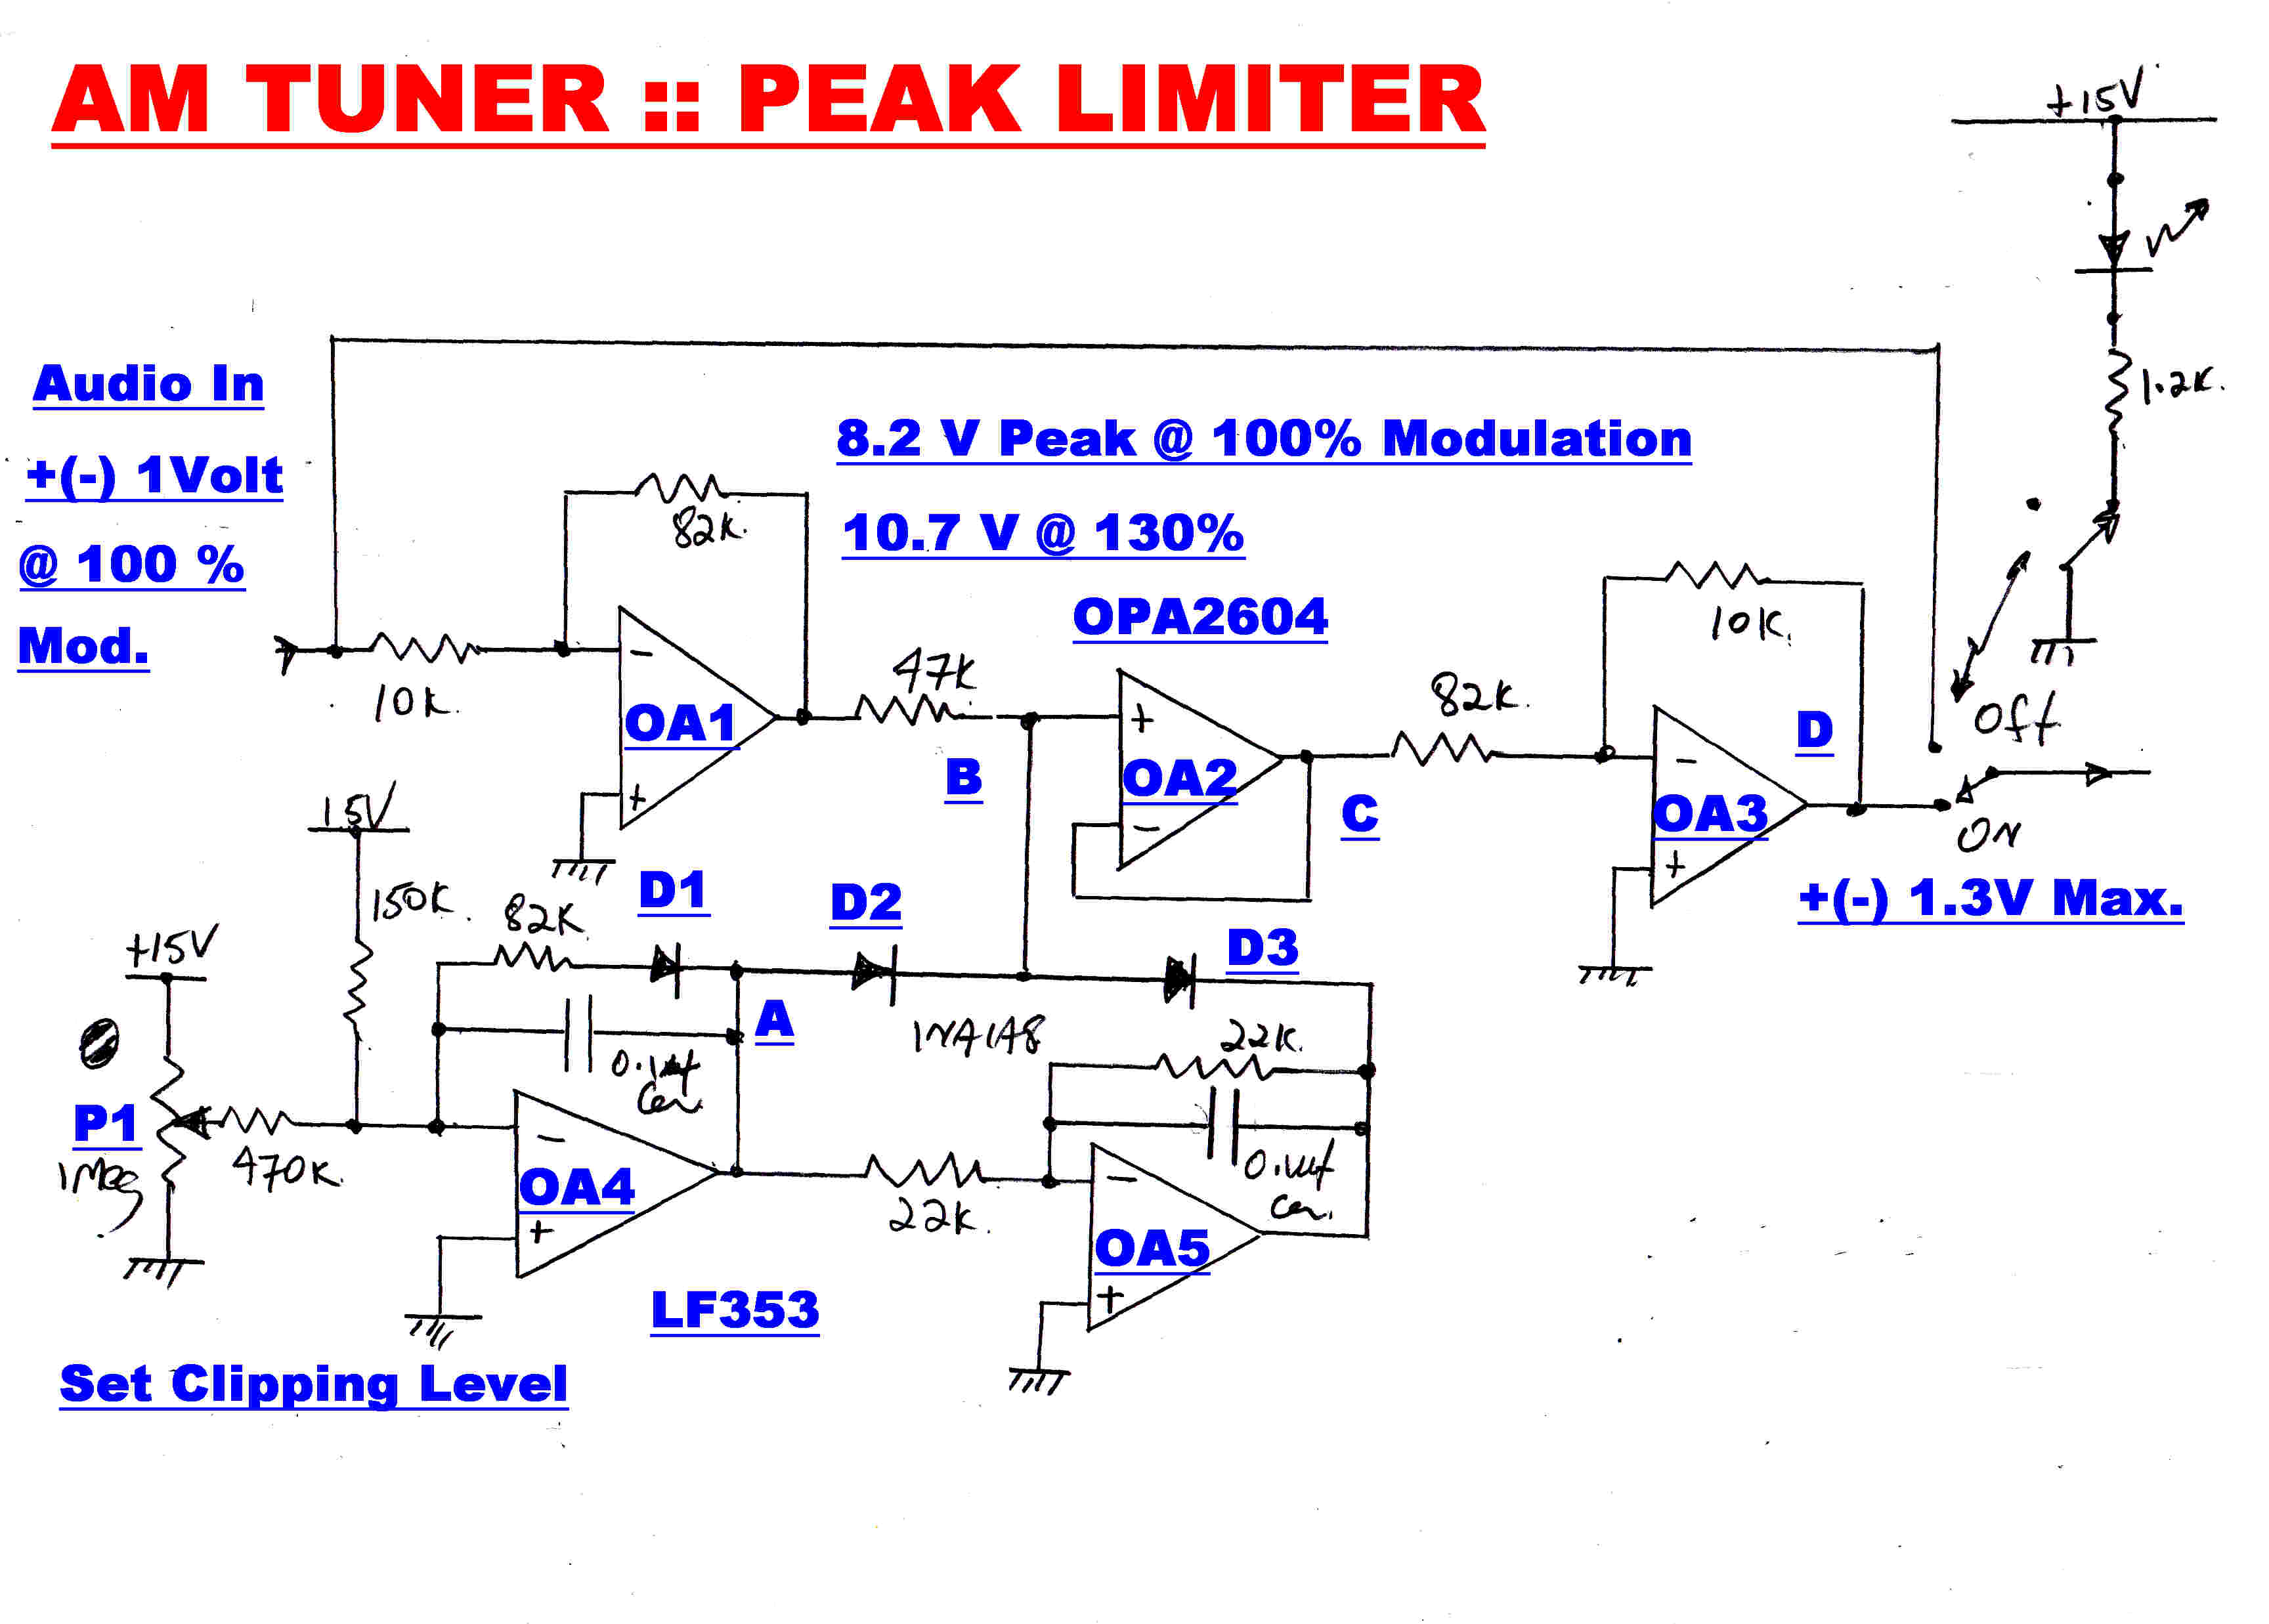 Peak Limiter Amplifier Schematic Trusted Wiring Diagram Vk6wia News Broadcast Transceiver Circuits Amplitudemodulation But Provision Is Made For Noisy Signals Which Also May Have Suffefred From Multipath Transmission